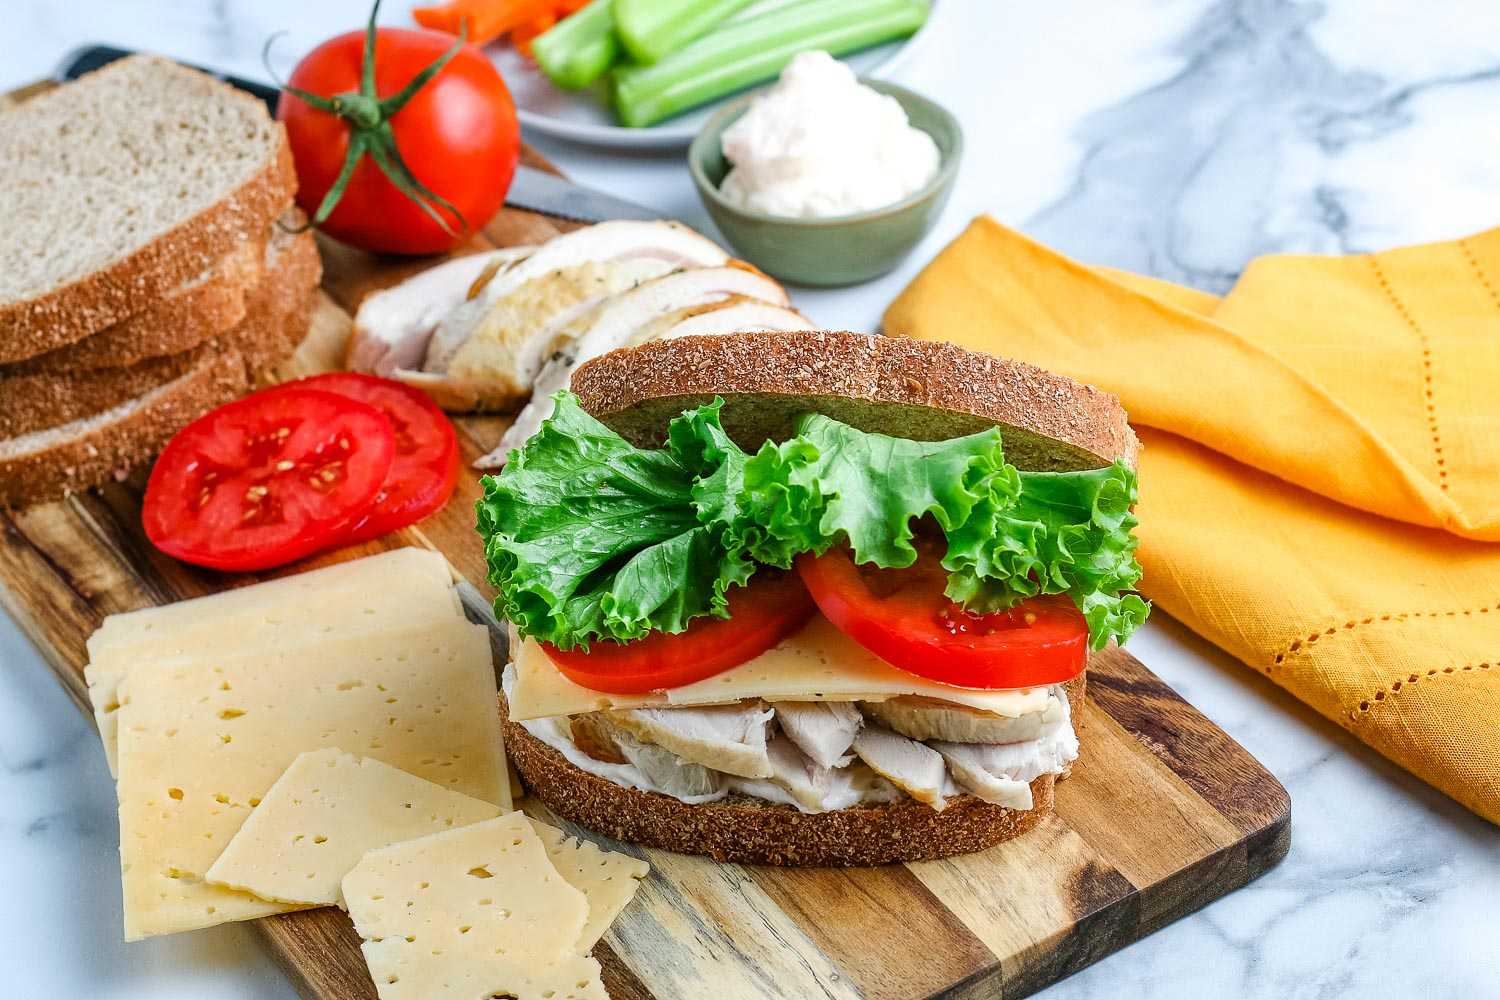 Leftover Turkey Sandwich on a wooden cutting board surrounded by other sandwich ingredients.